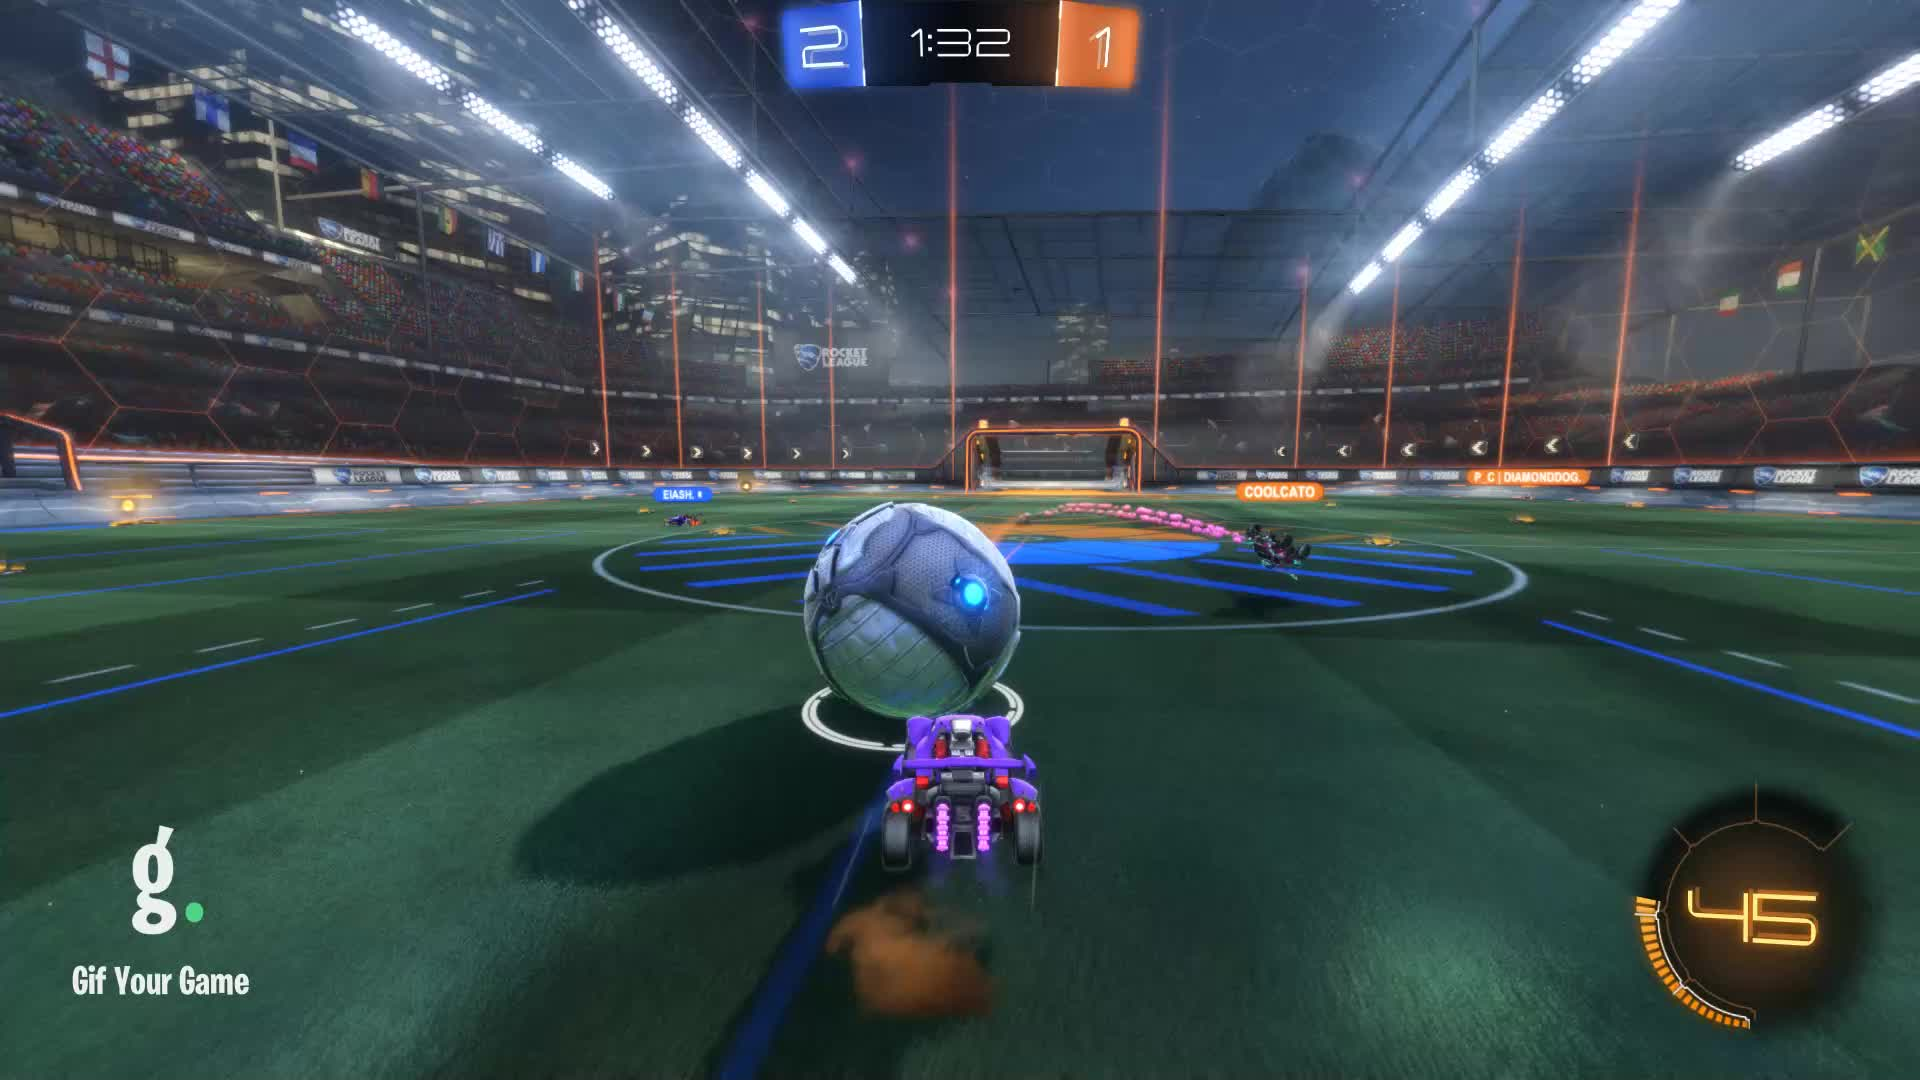 Assist, Gif Your Game, GifYourGame, JAG | Purple, Rocket League, RocketLeague, Assist 3: JAG | Purple GIFs